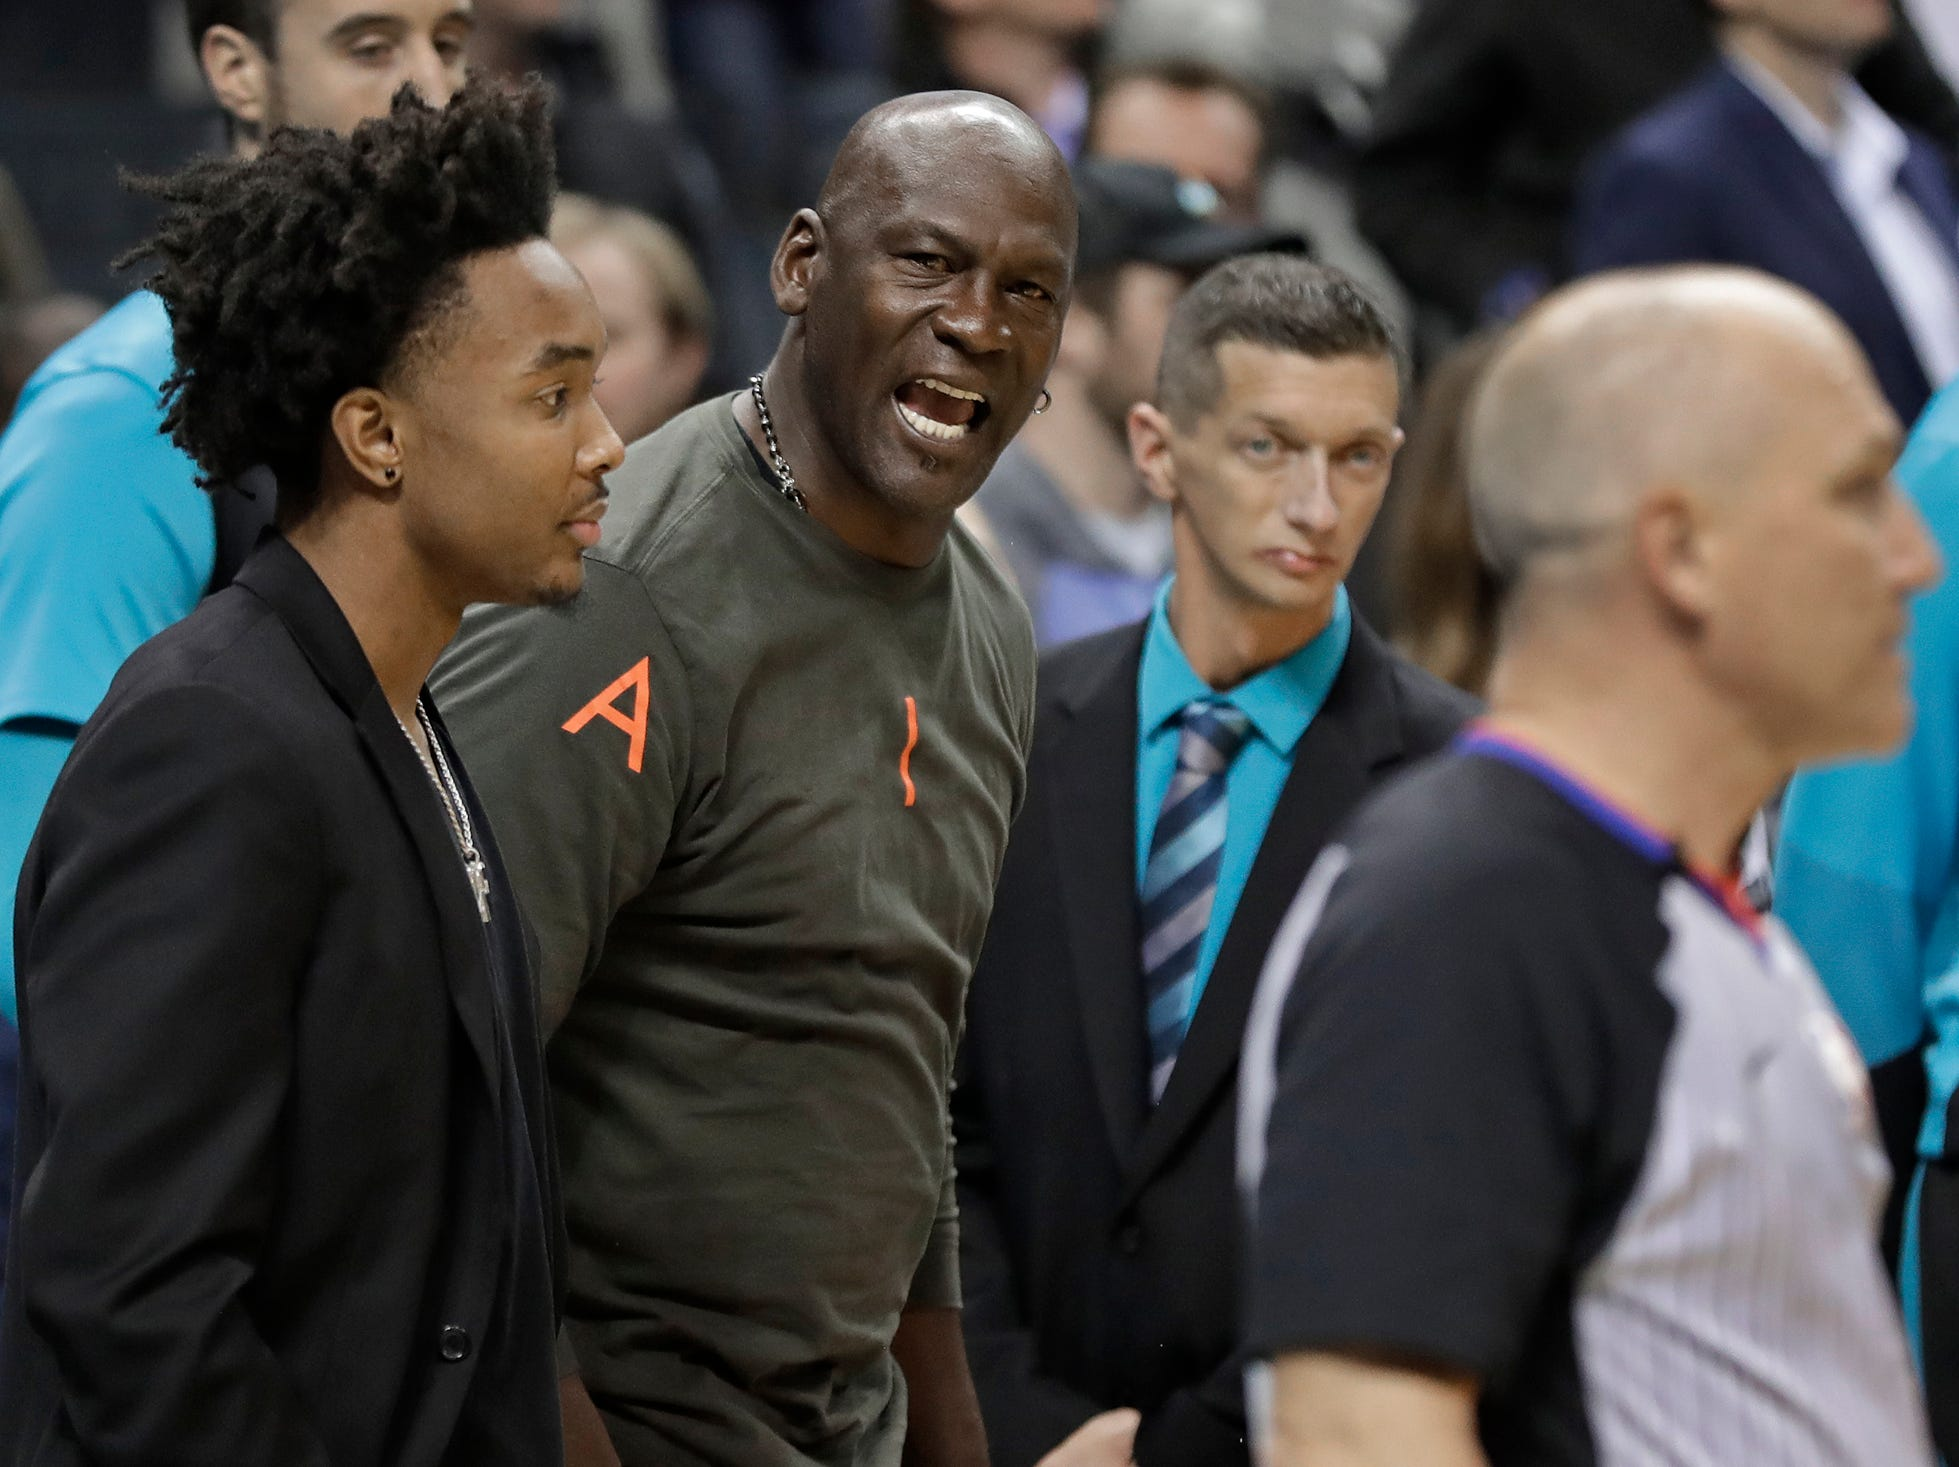 Charlotte Hornets owner Michael Jordan, center, shouts at an official in the final seconds of the second half of an NBA basketball game against the Detroit Pistons in Charlotte, N.C., Wednesday, Dec. 12, 2018. Officials ruled the Hornets had six players on the floor in the final second of the game, giving one free throw to Detroit. The Hornets won 108-107. (AP Photo/Chuck Burton)